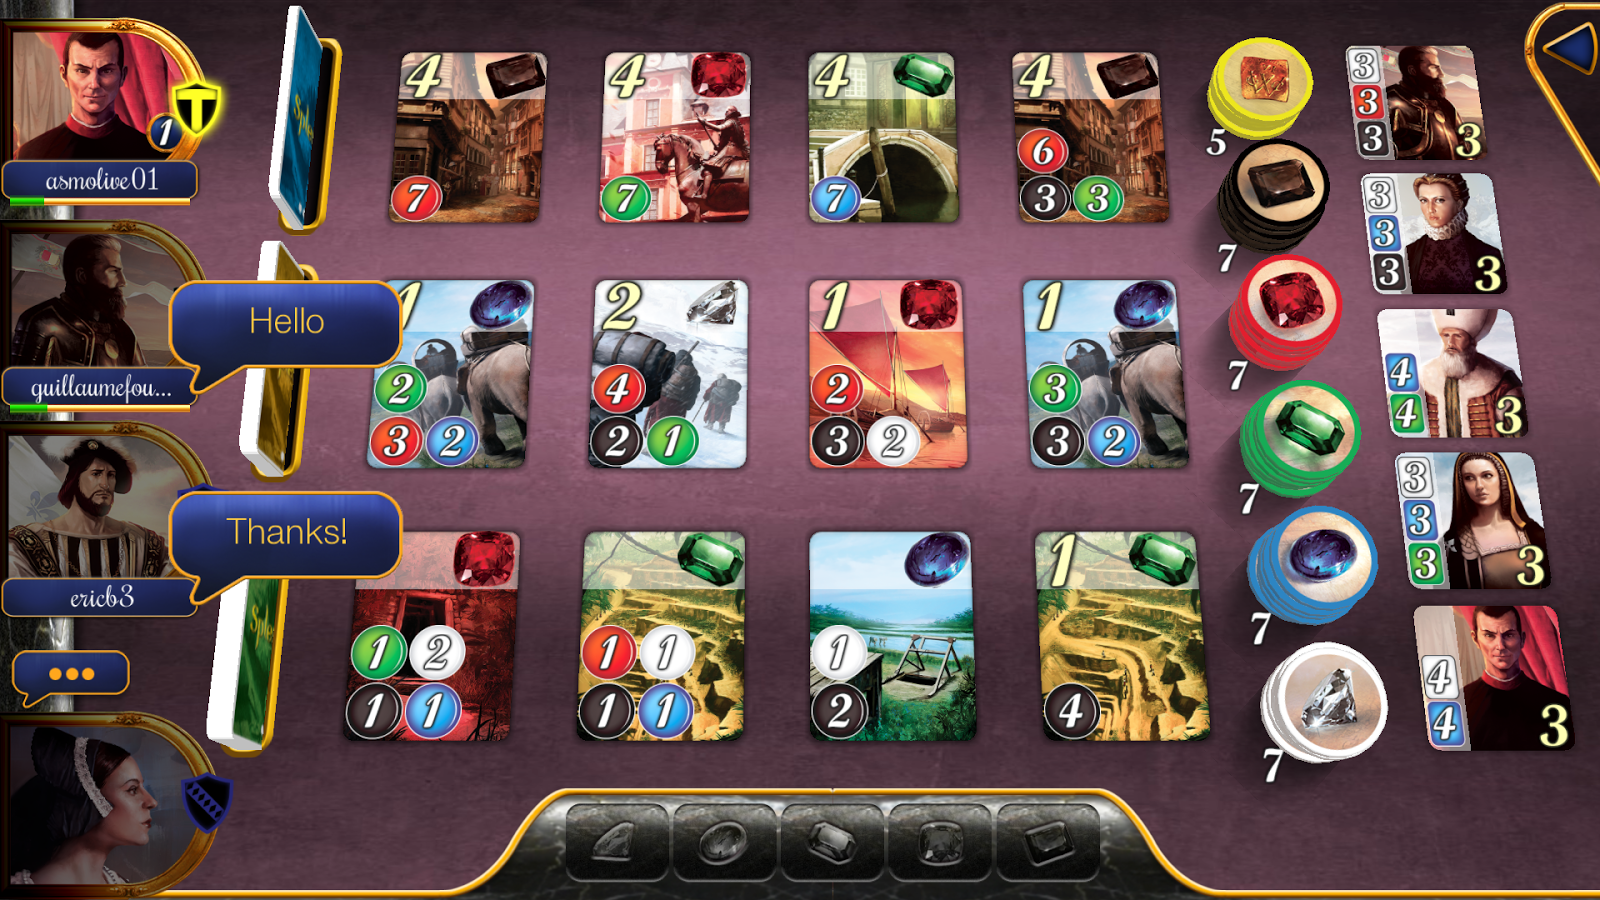 Splendor Screenshot 6